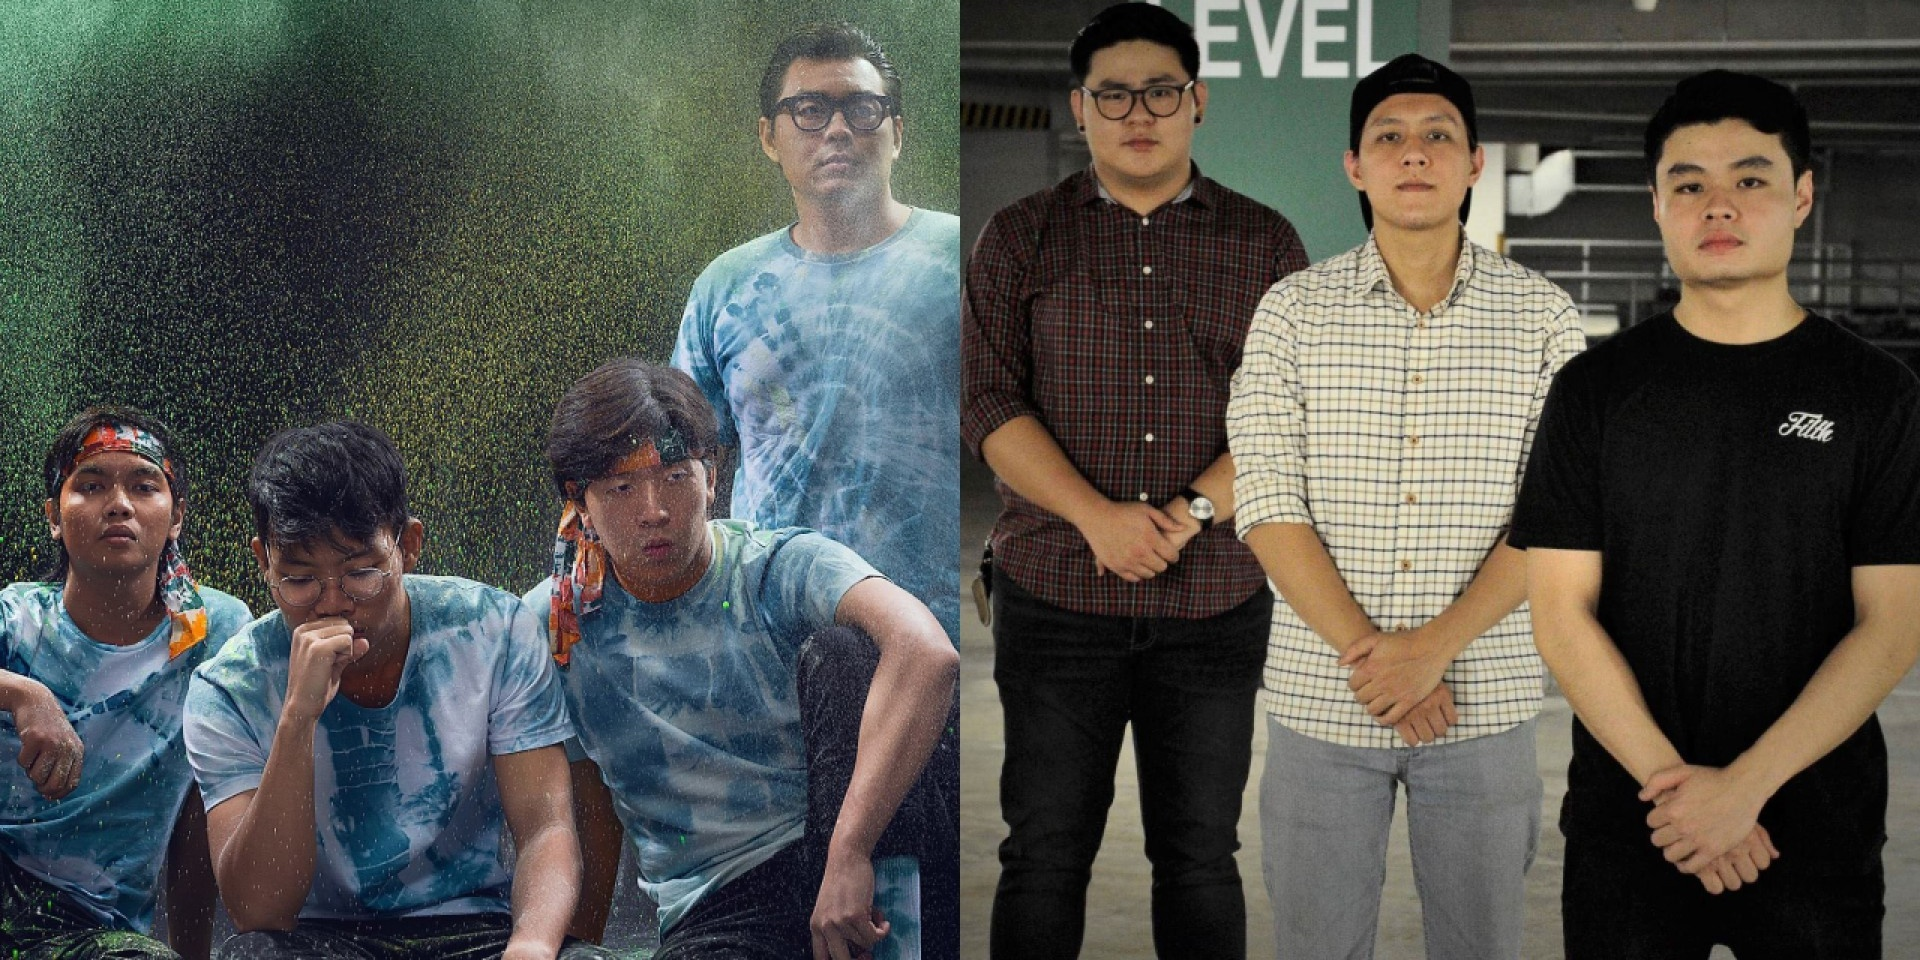 Bandwagon Campus Tour comes to Temasek Polytechnic – Bakers In Space, The Groove Gurus and others to perform